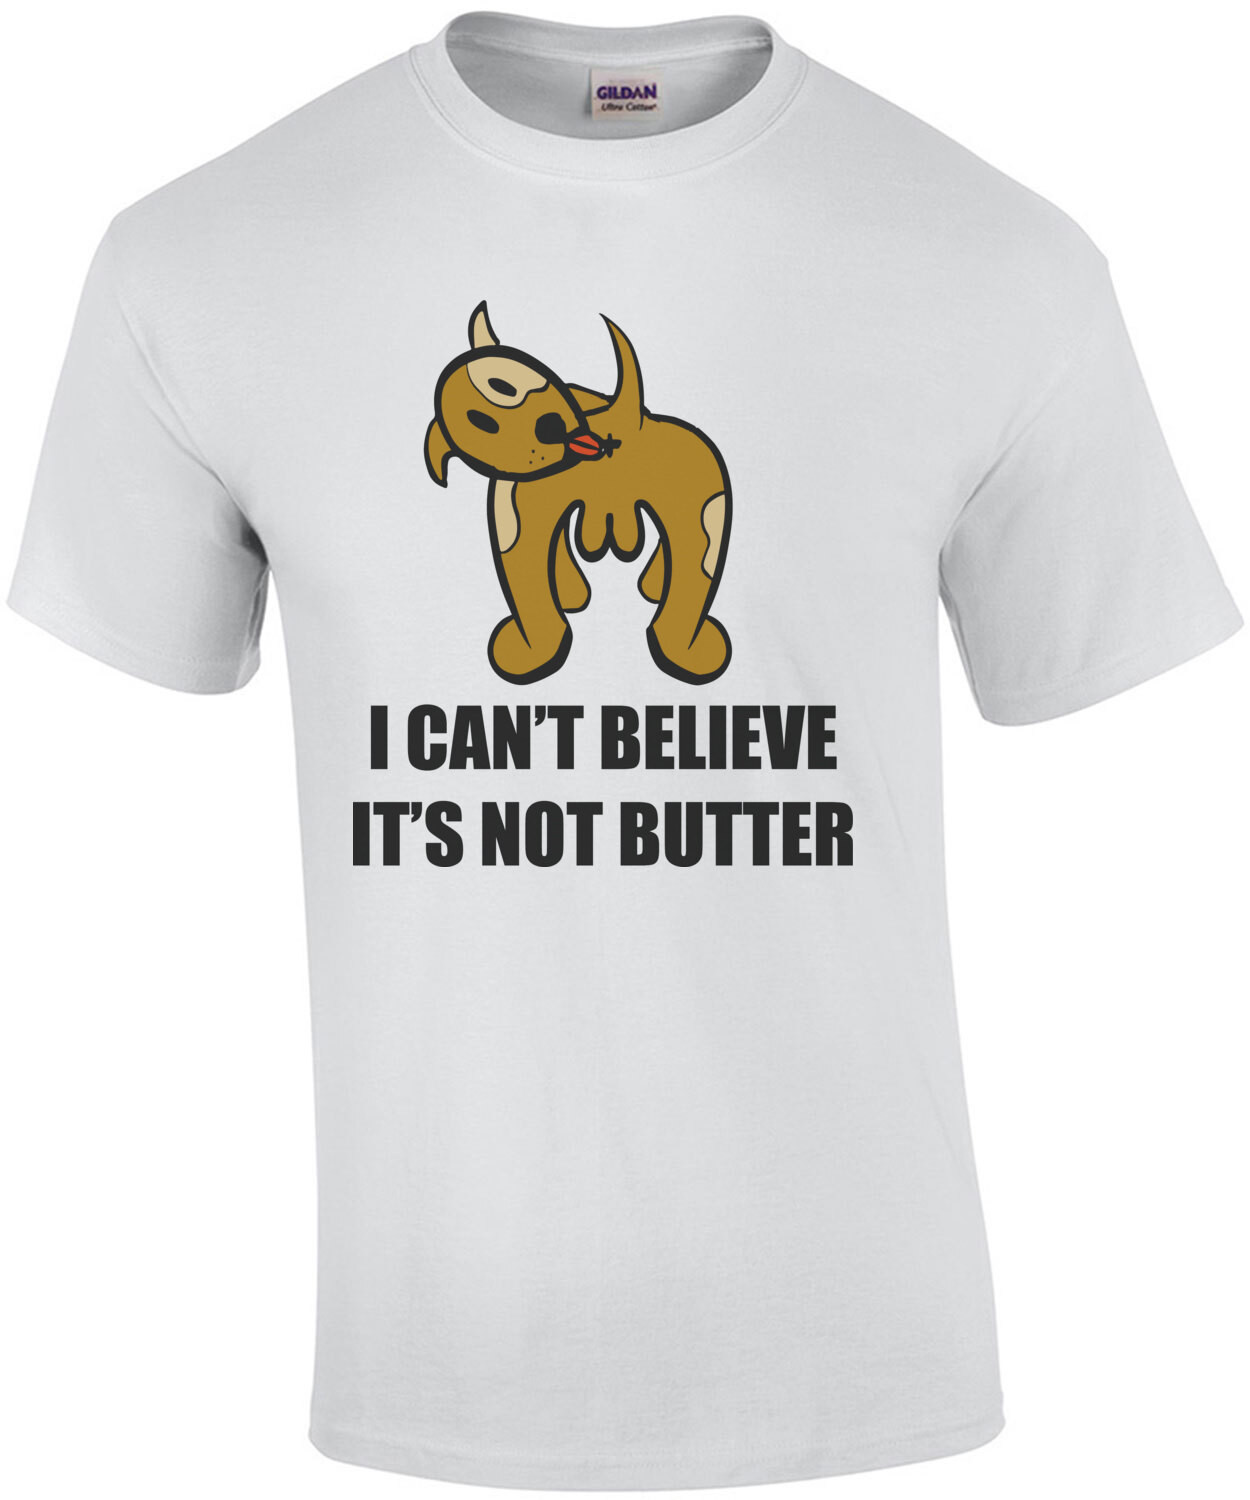 I can't believe it's not butter - funny dog t-shirt